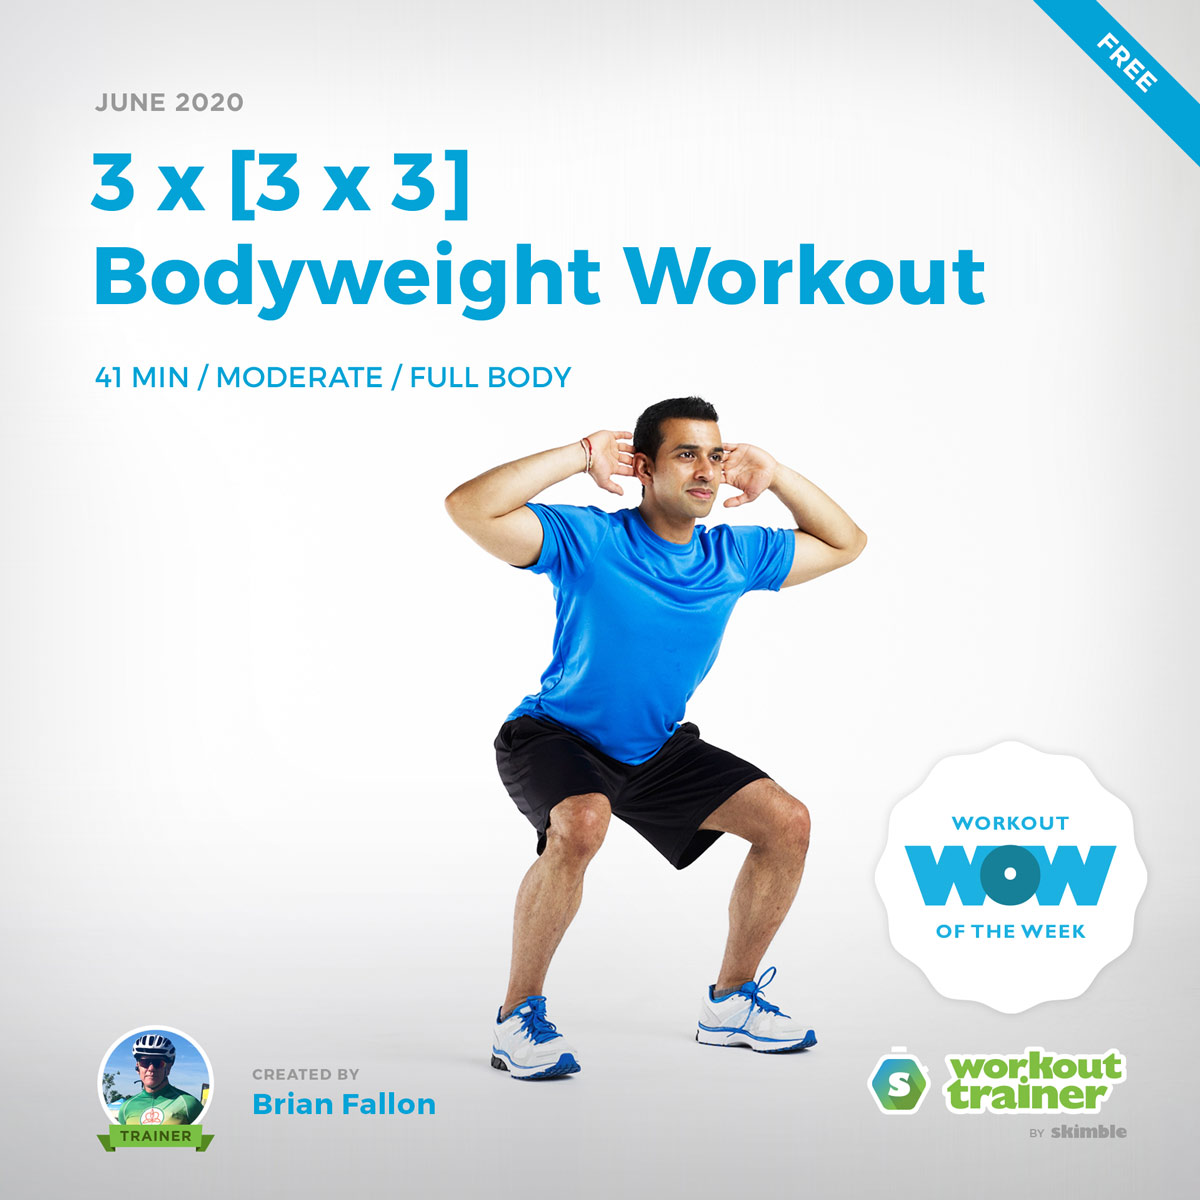 Workout Trainer by Skimble: Free Workout of the Week: 3 x [3 x 3] Bodyweight Workout by Brian Fallon